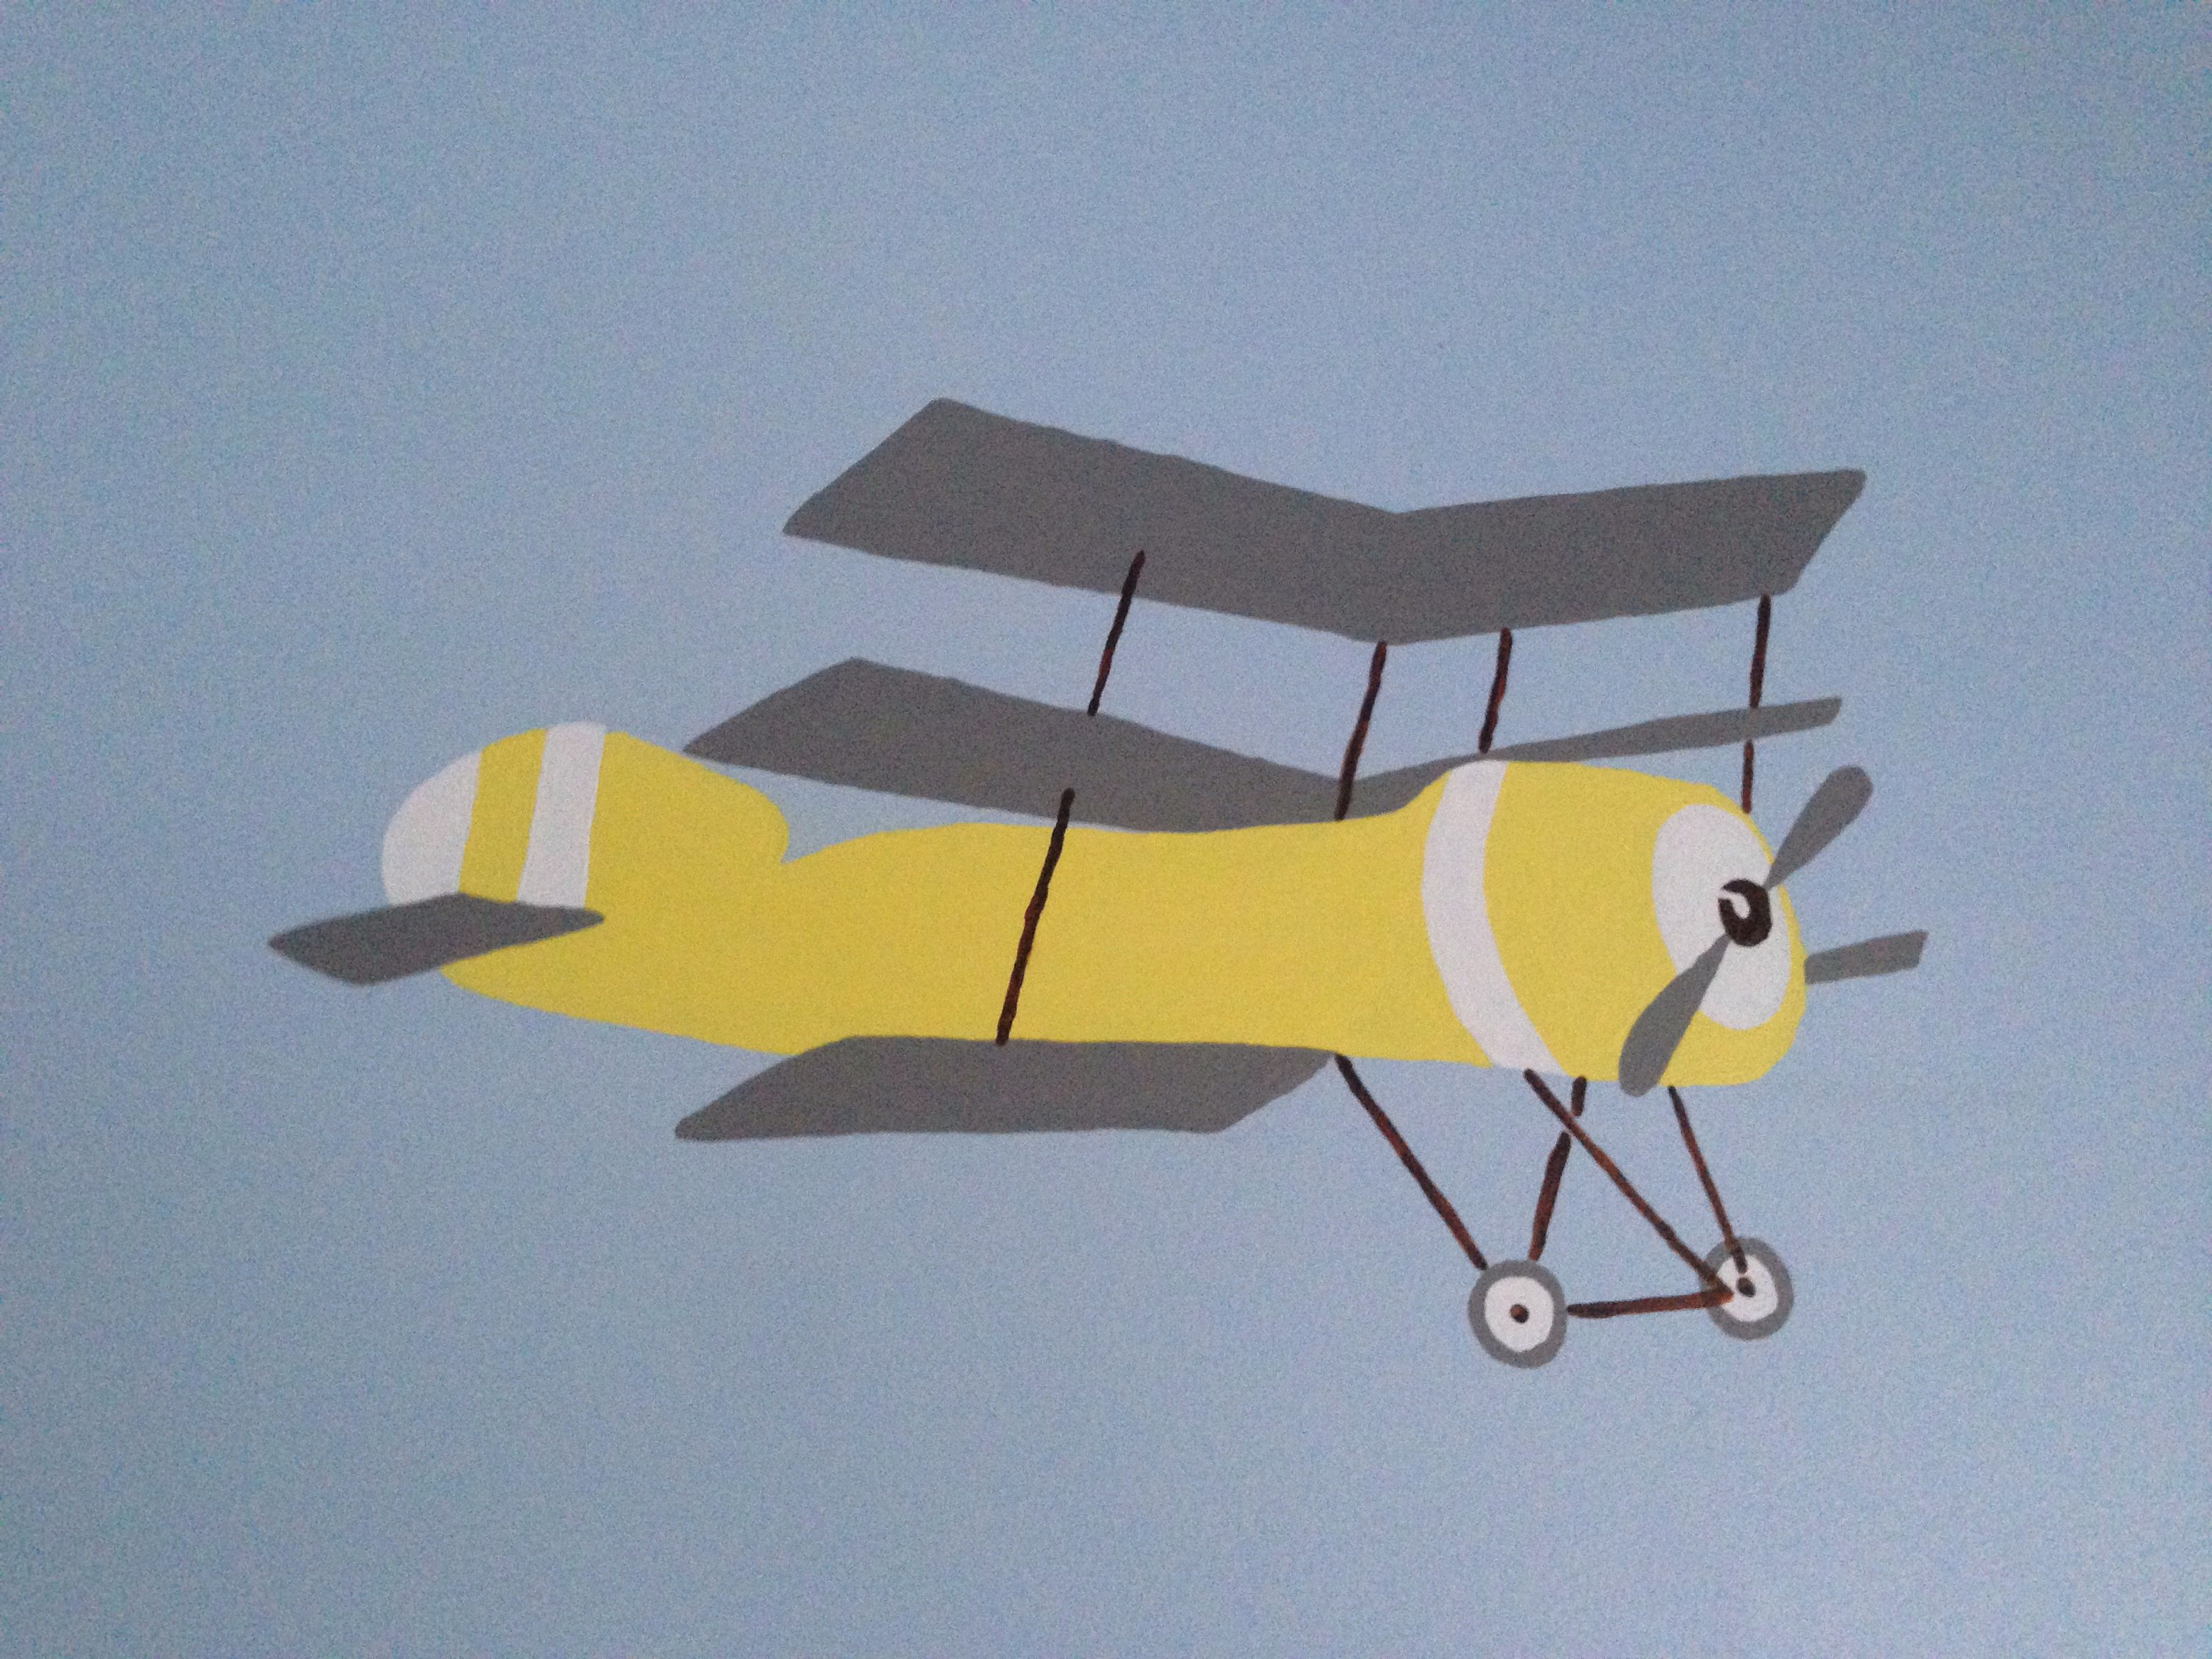 Yellow bi-plane from Cath Kidston aeroplane fabric painted onto a ...